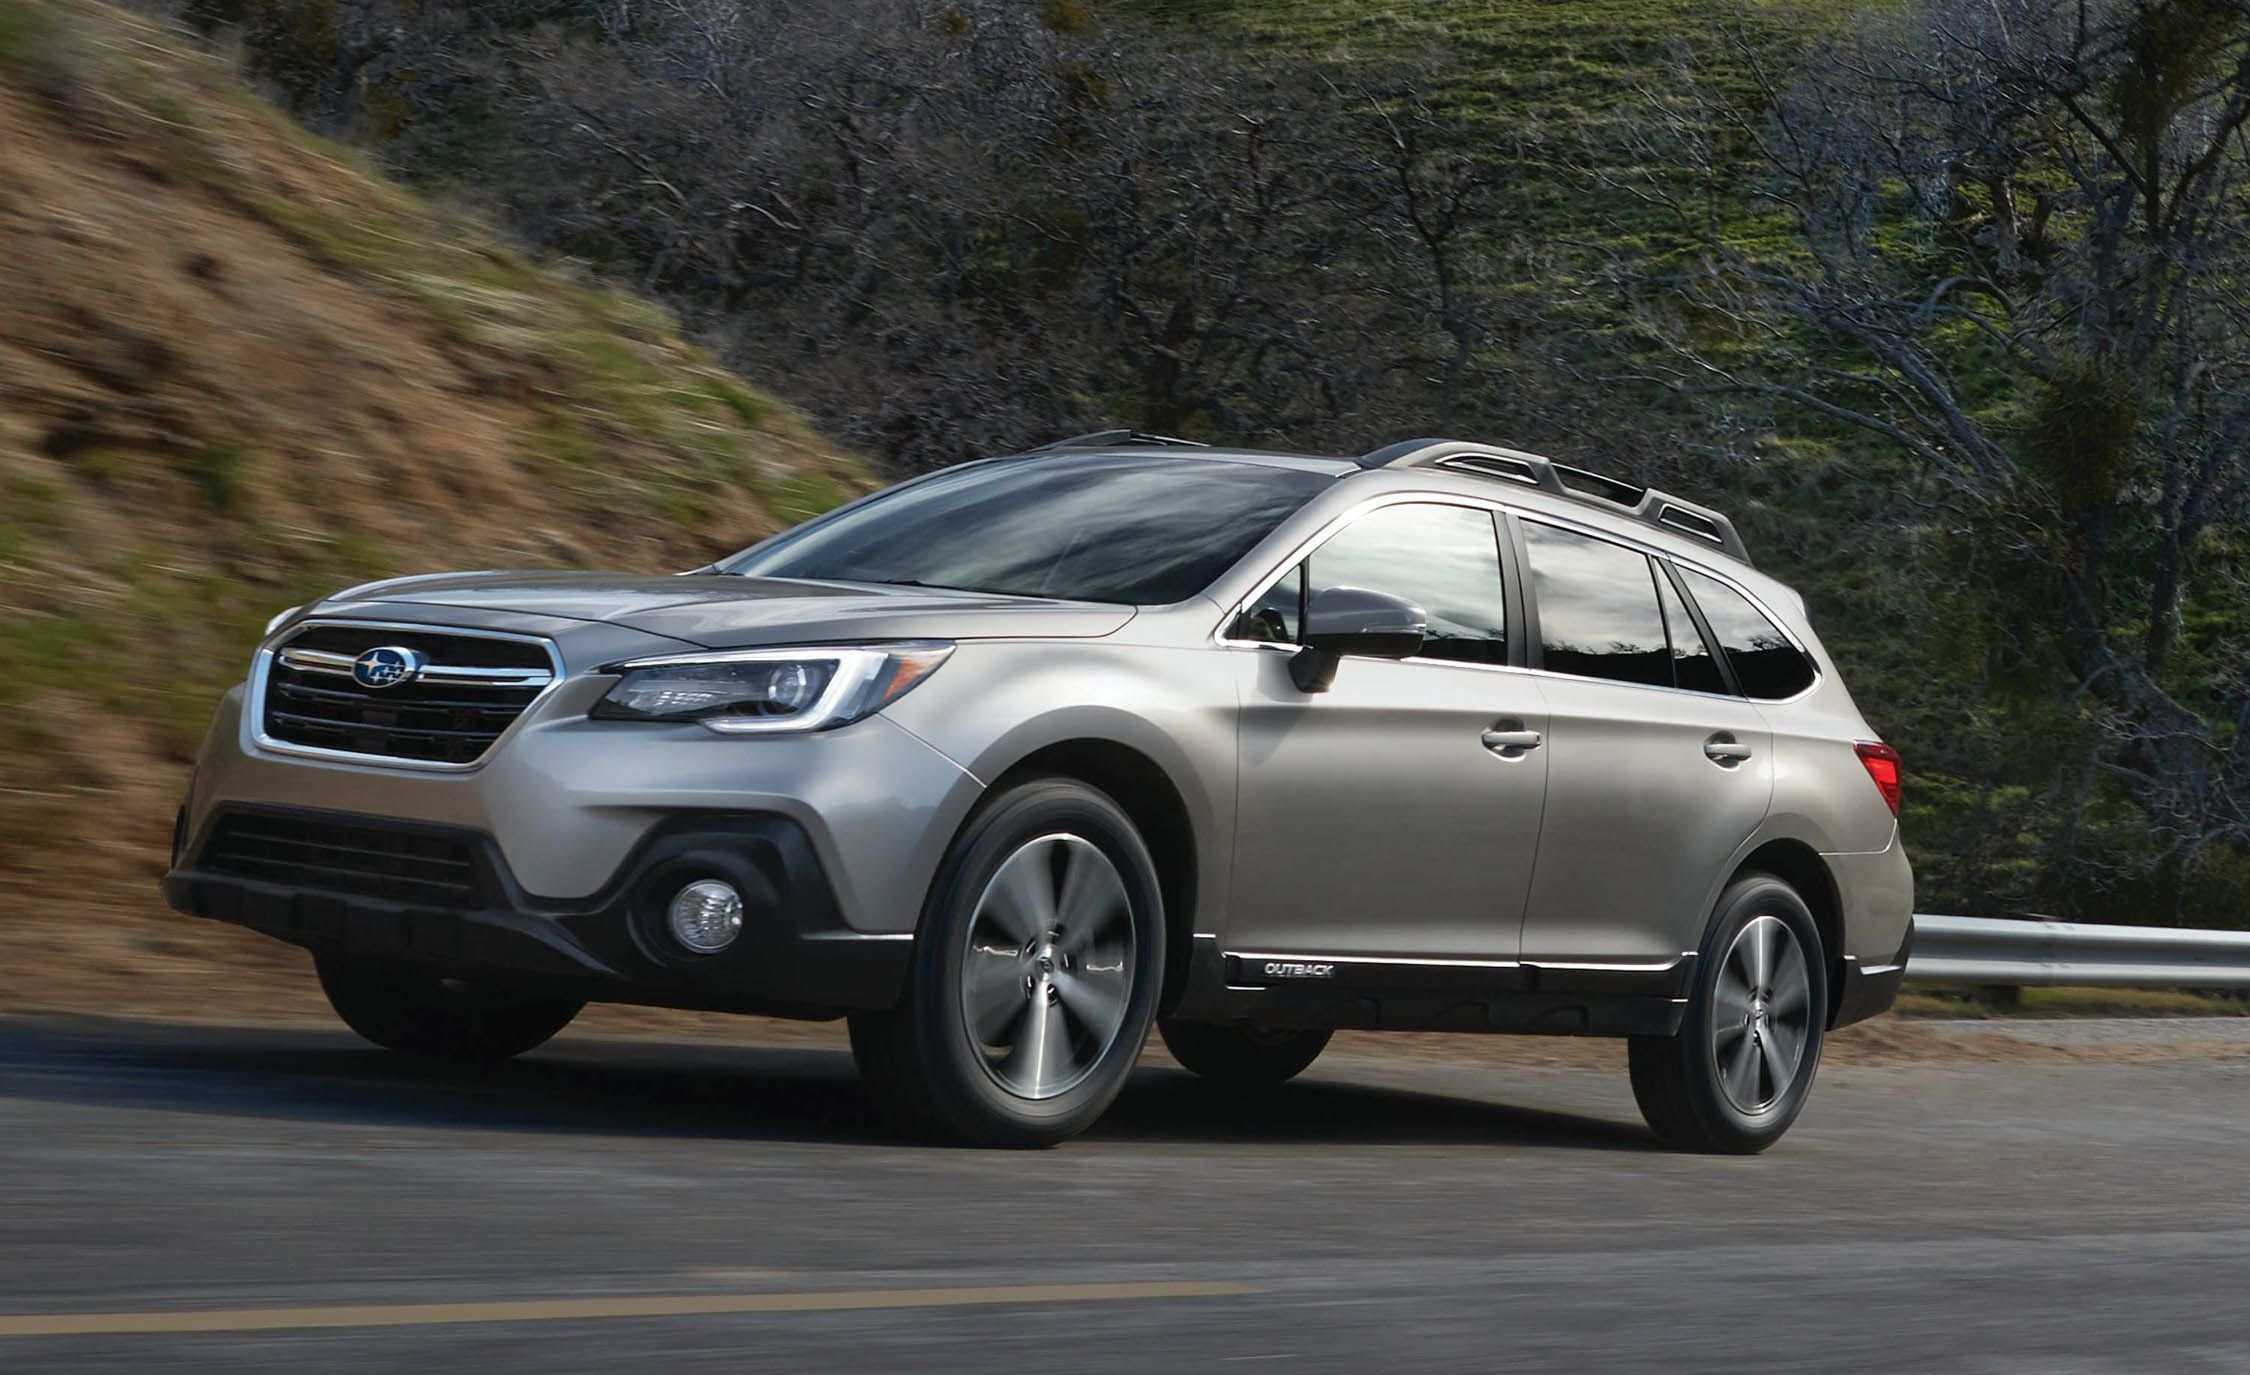 21 Gallery of Best Subaru Outback 2019 Canada Review Release by Best Subaru Outback 2019 Canada Review